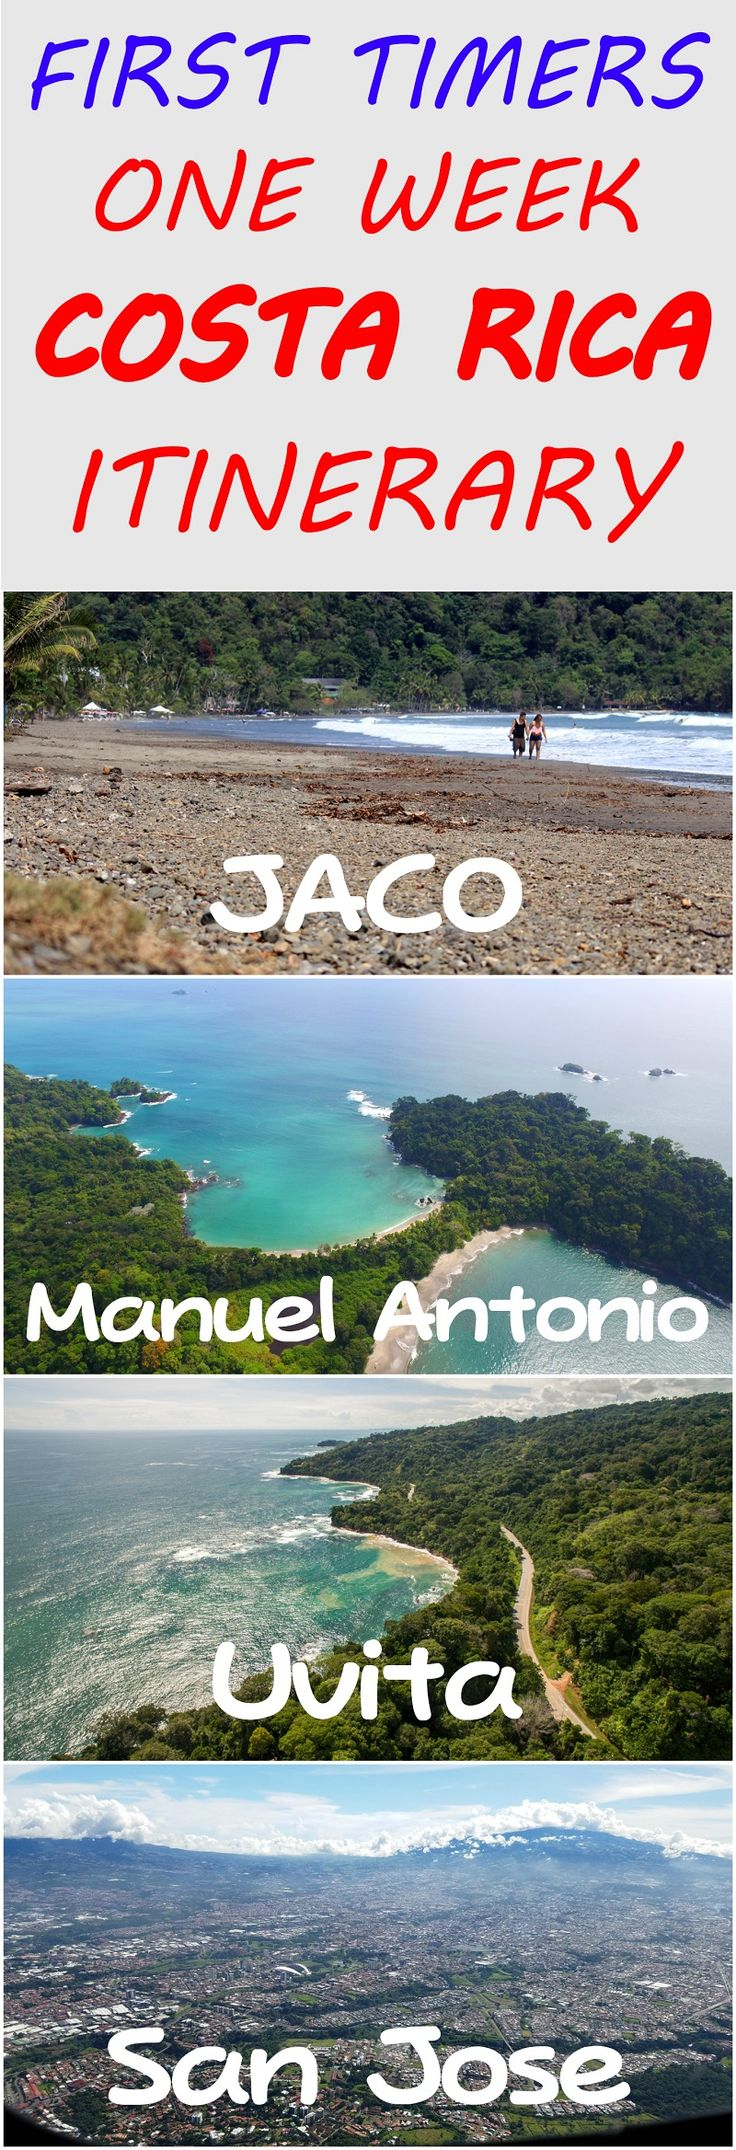 1 Week Costa Rica Itinerary Central and